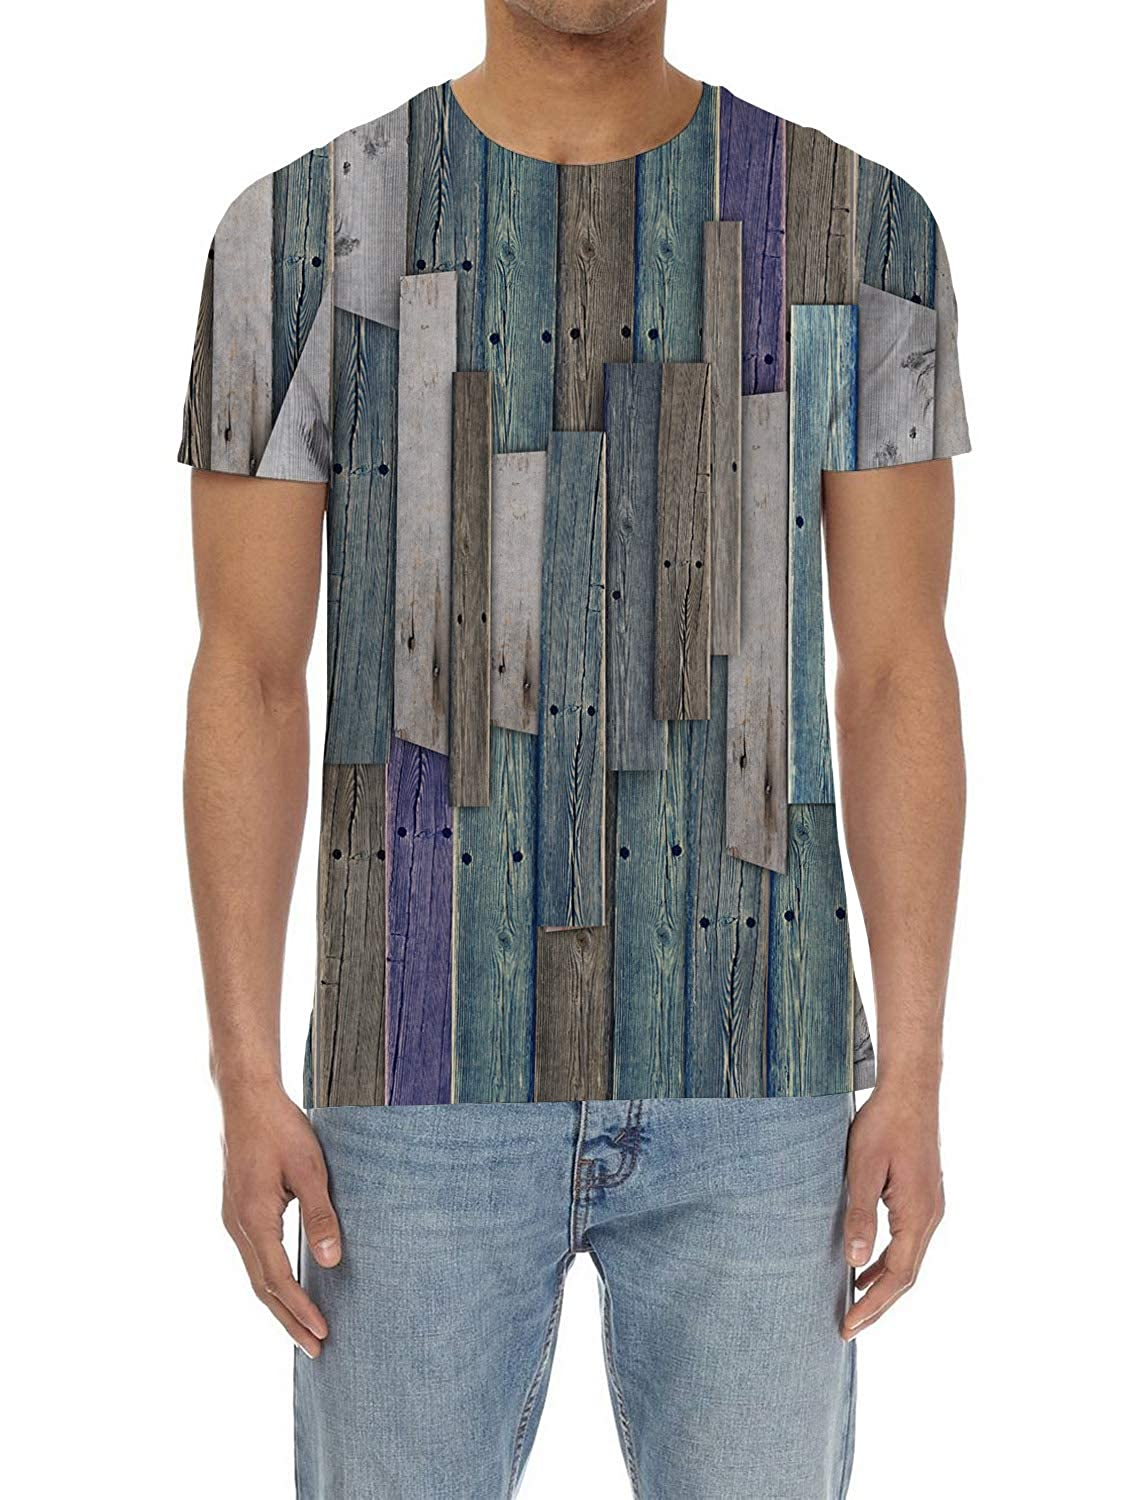 SunShine Day Wooden Rustic Mens Everyday ComfortSoft Short Sleeve T-Shirt for Workout Running Sports